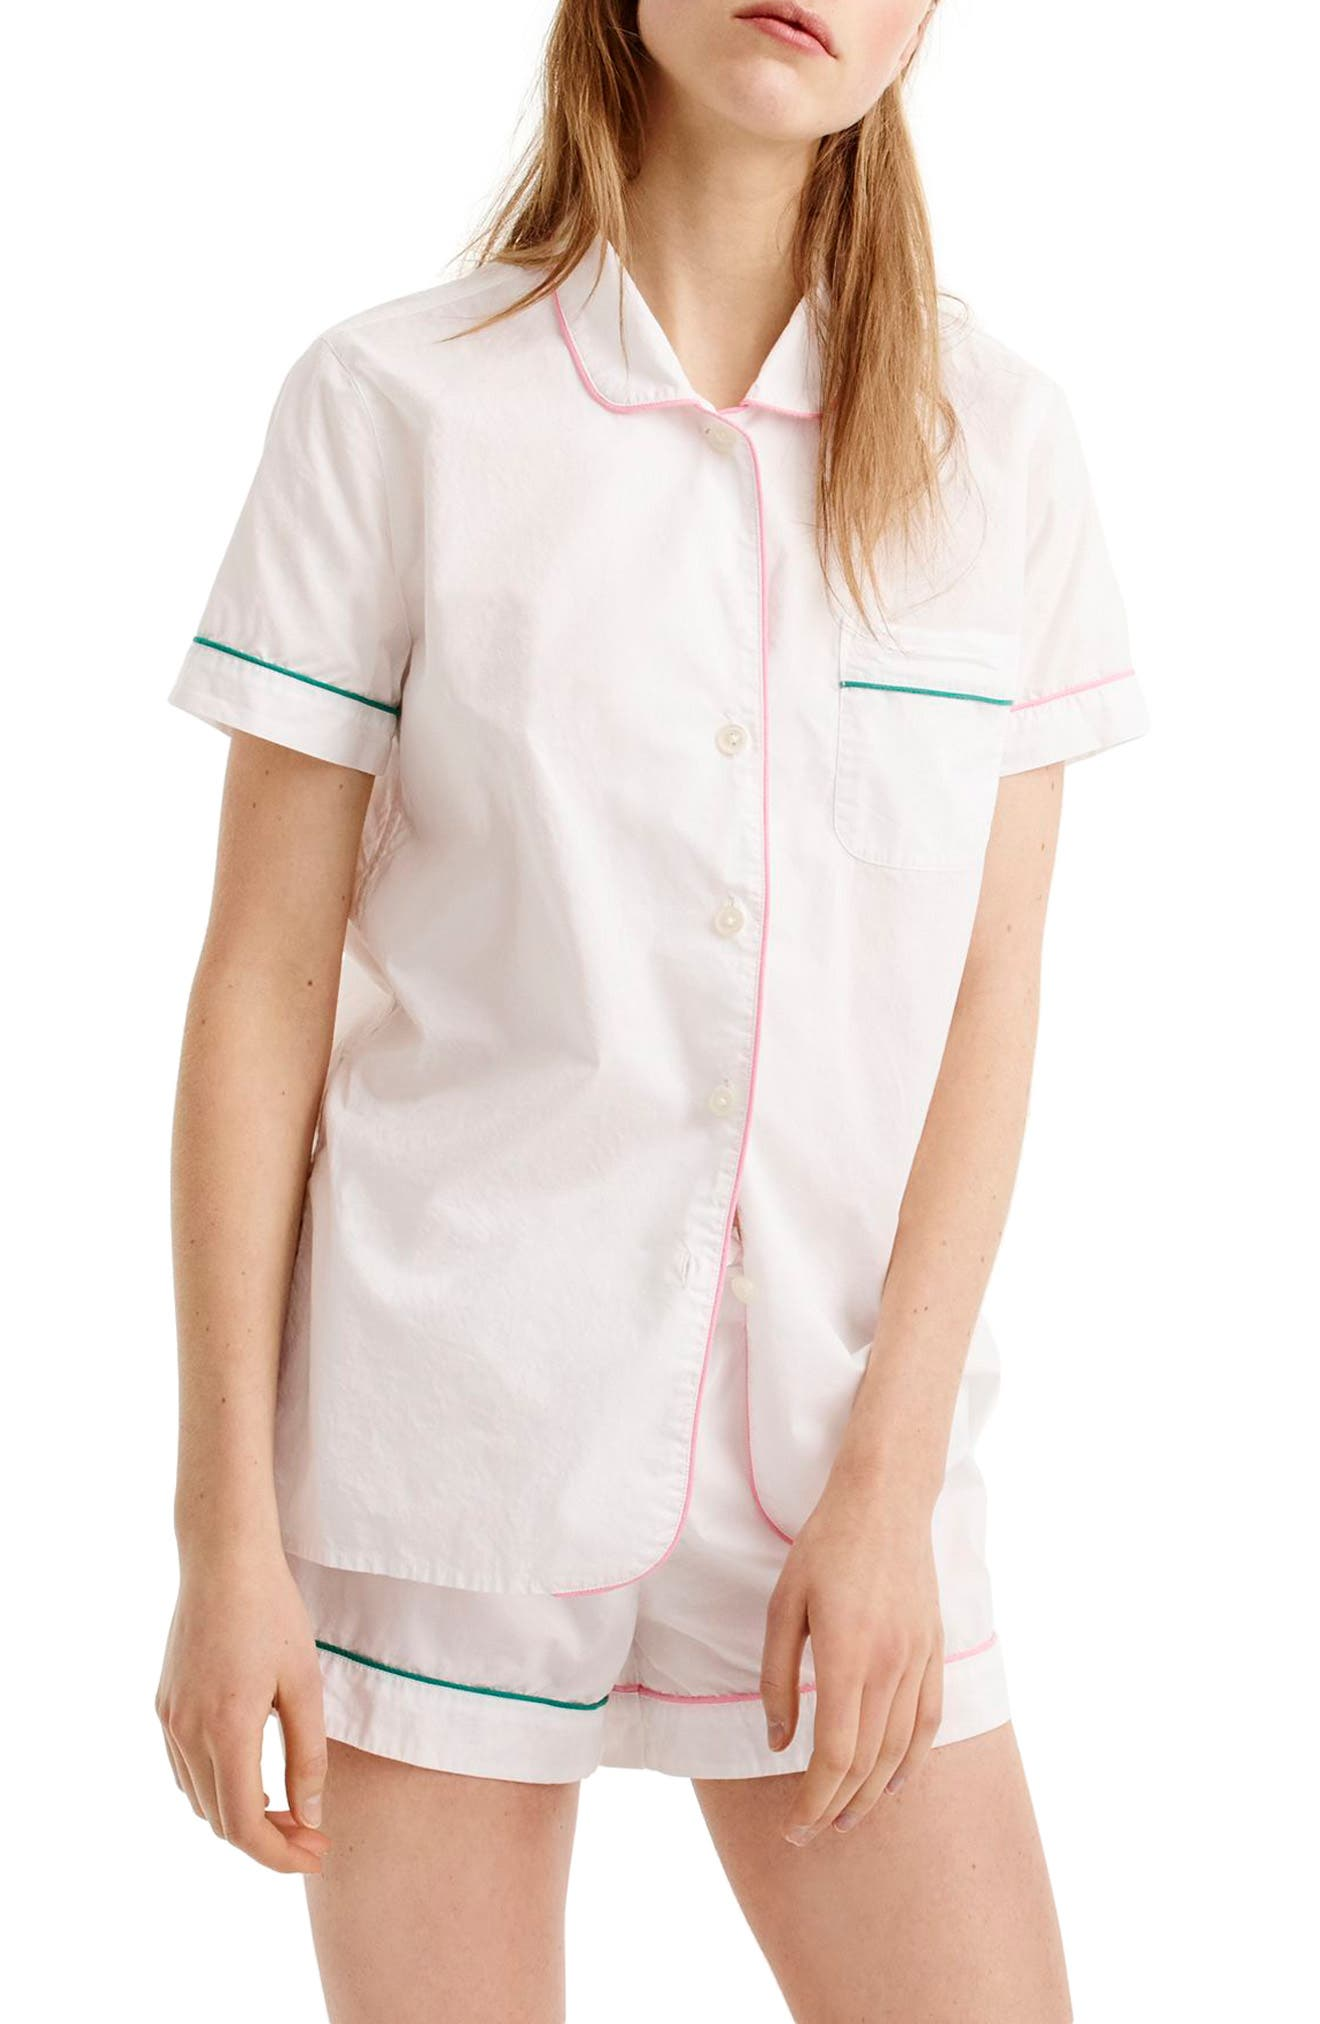 Tipped Short Cotton Pajamas,                             Main thumbnail 1, color,                             106